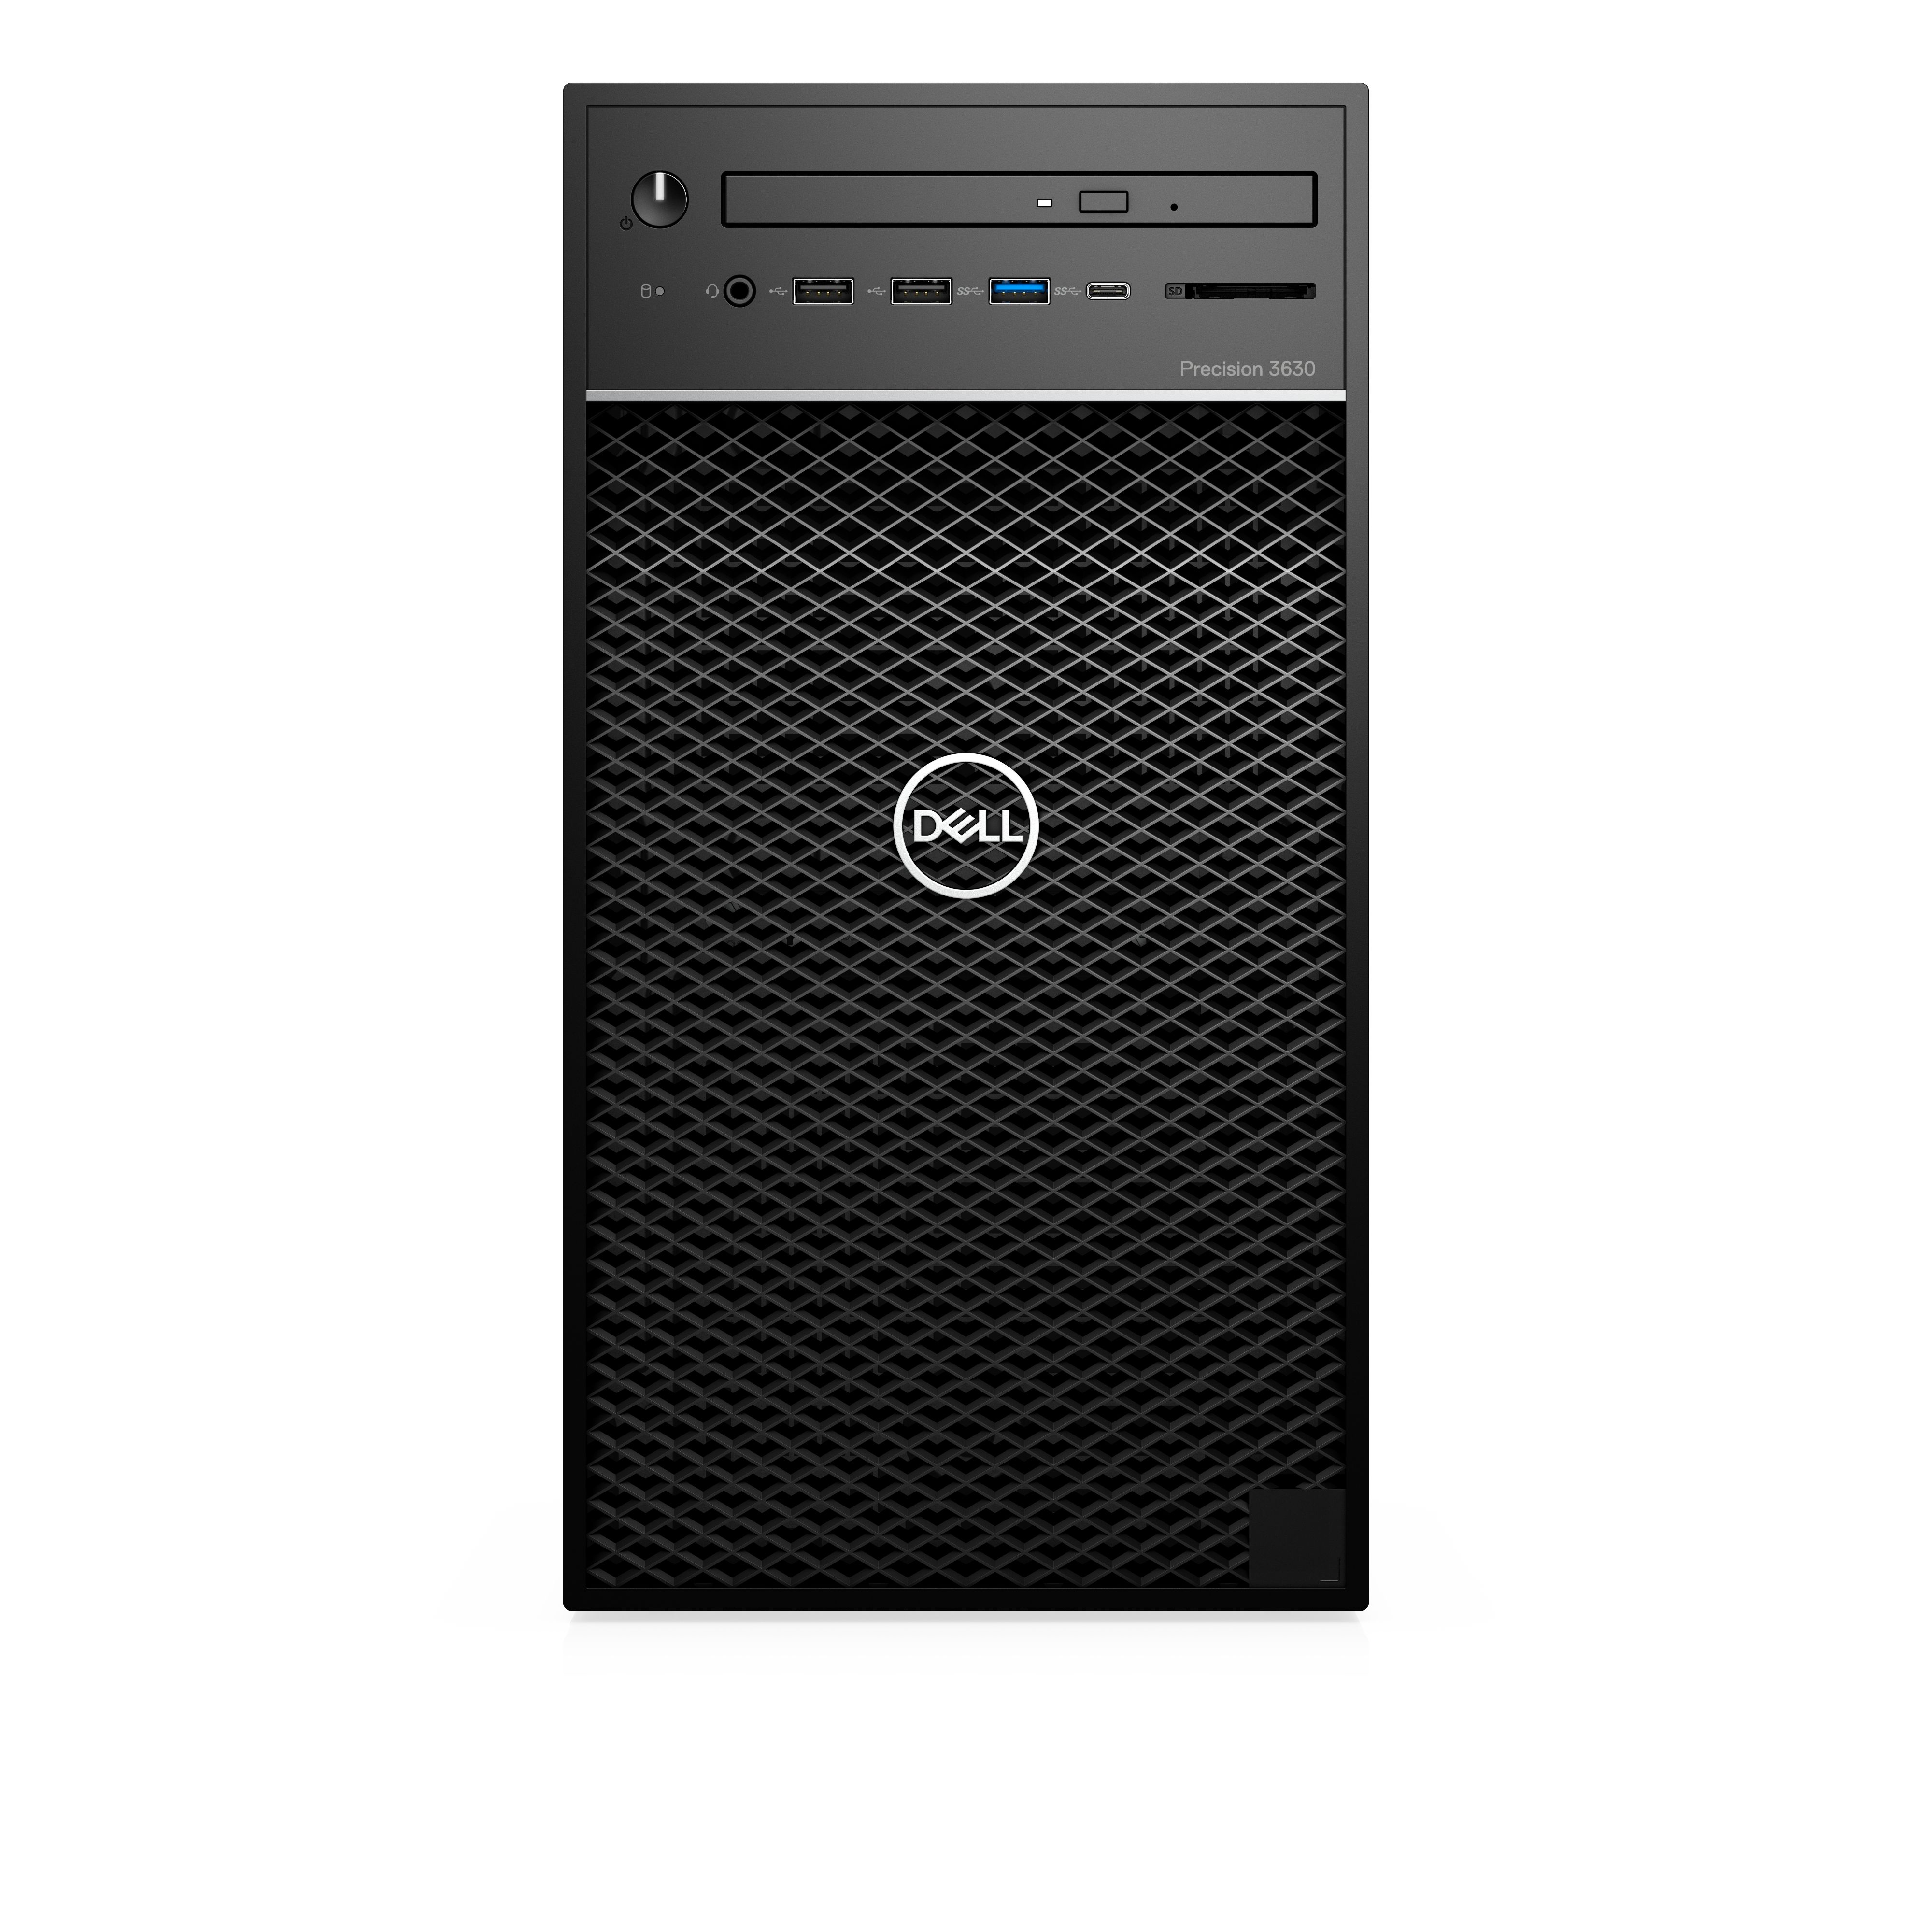 Dell Precision T3630/Core i7-8700/8GB/1TB 7.2k/Intel HD 630/PWR 460W/W10Pro/vPro/3Y PS NBD